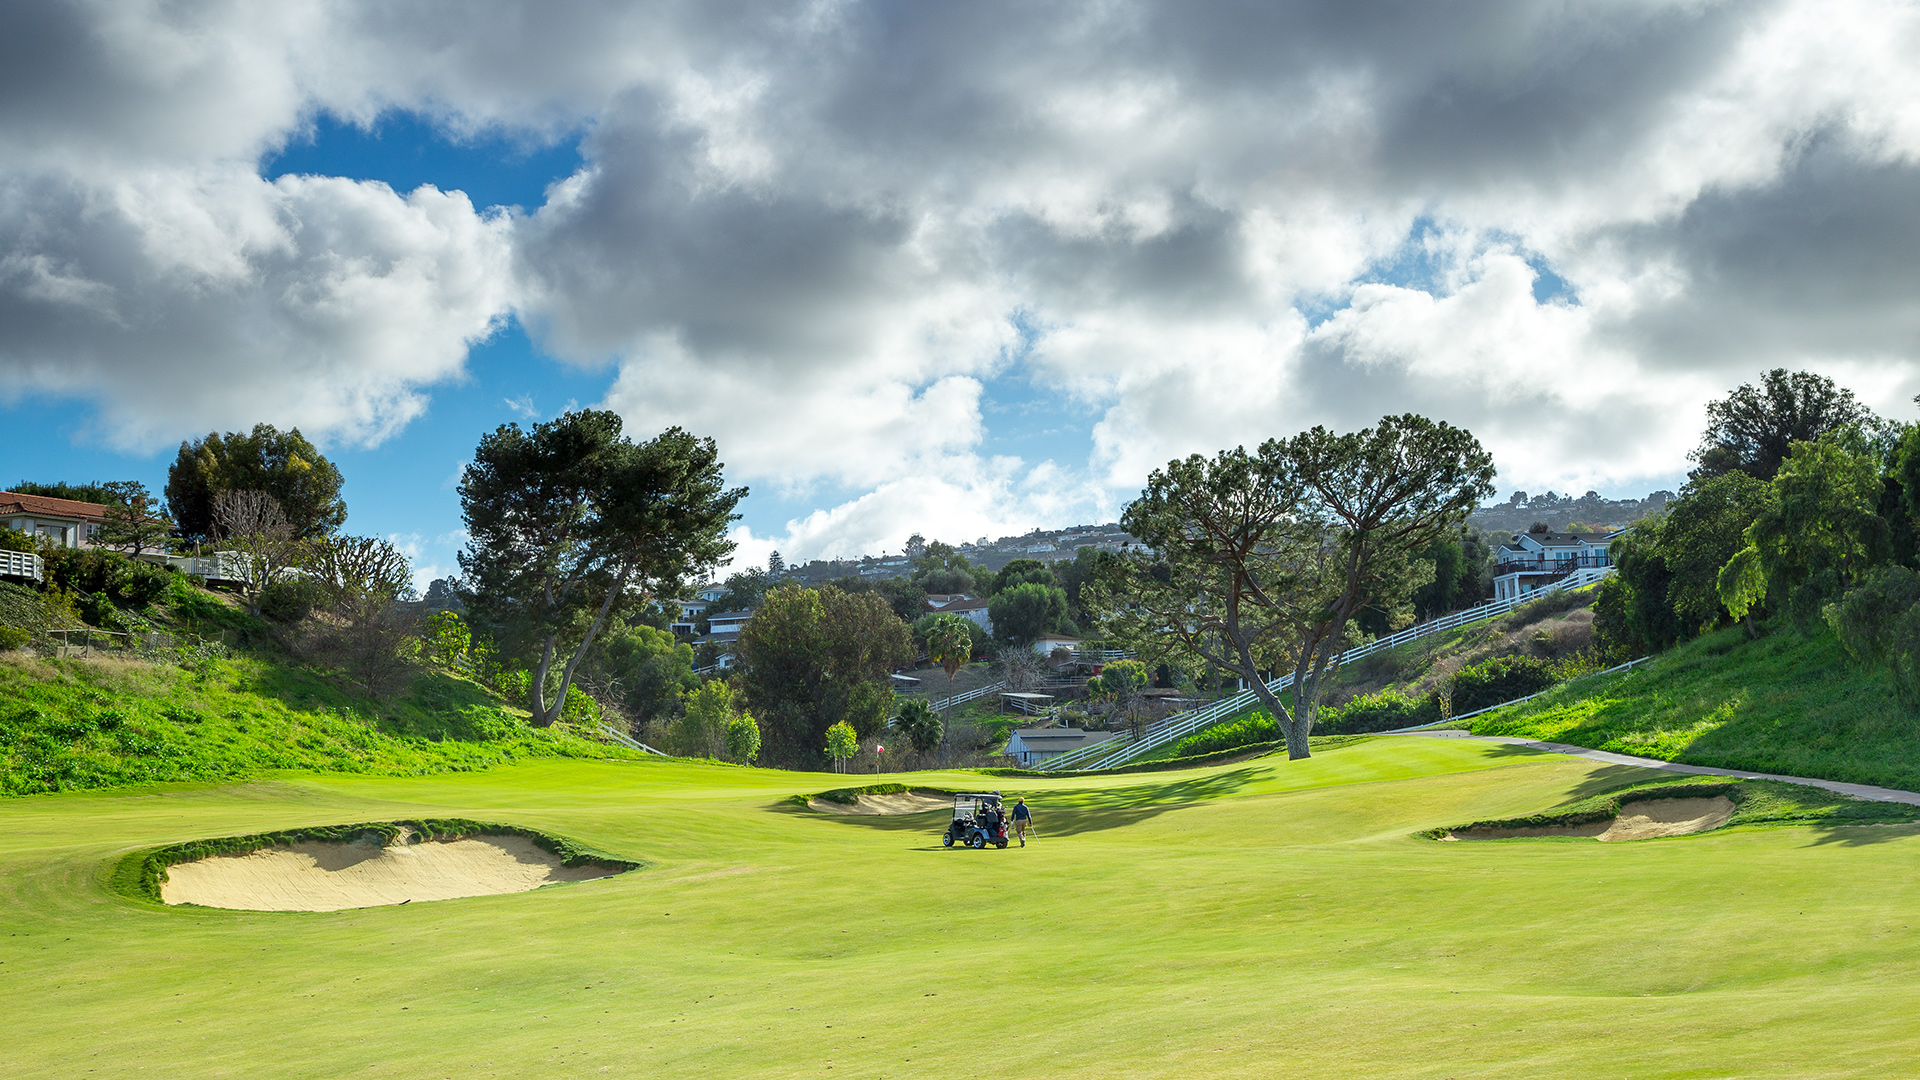 Golf courses designed by world-renowned David McLay Kidd